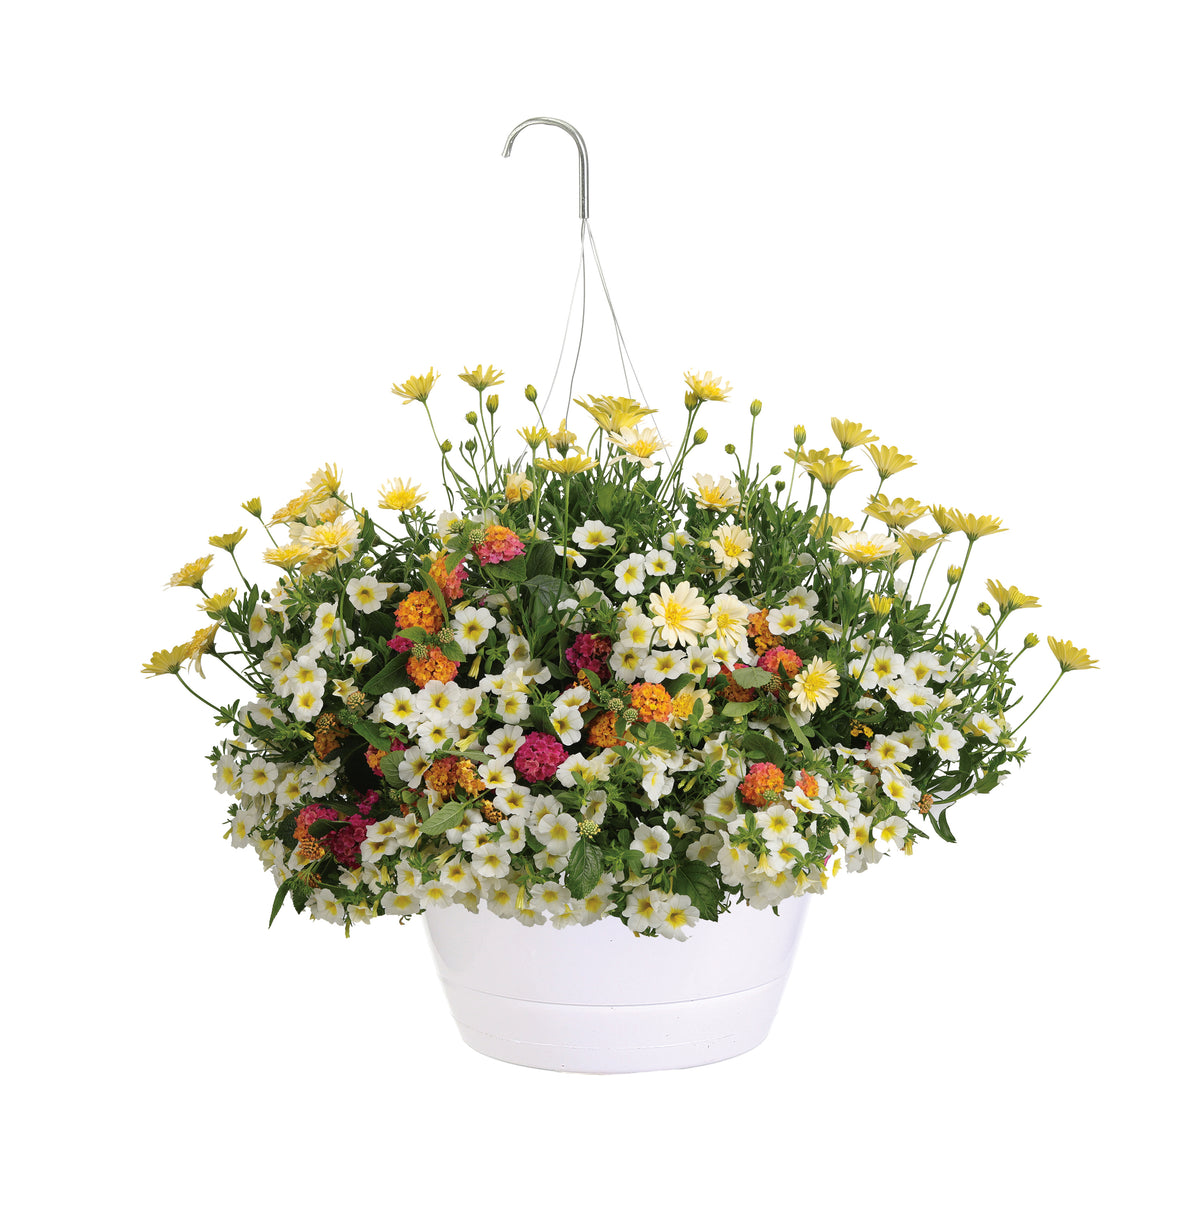 Proven Winners® Patio Plants|Wish Combination Hanging Basket 1